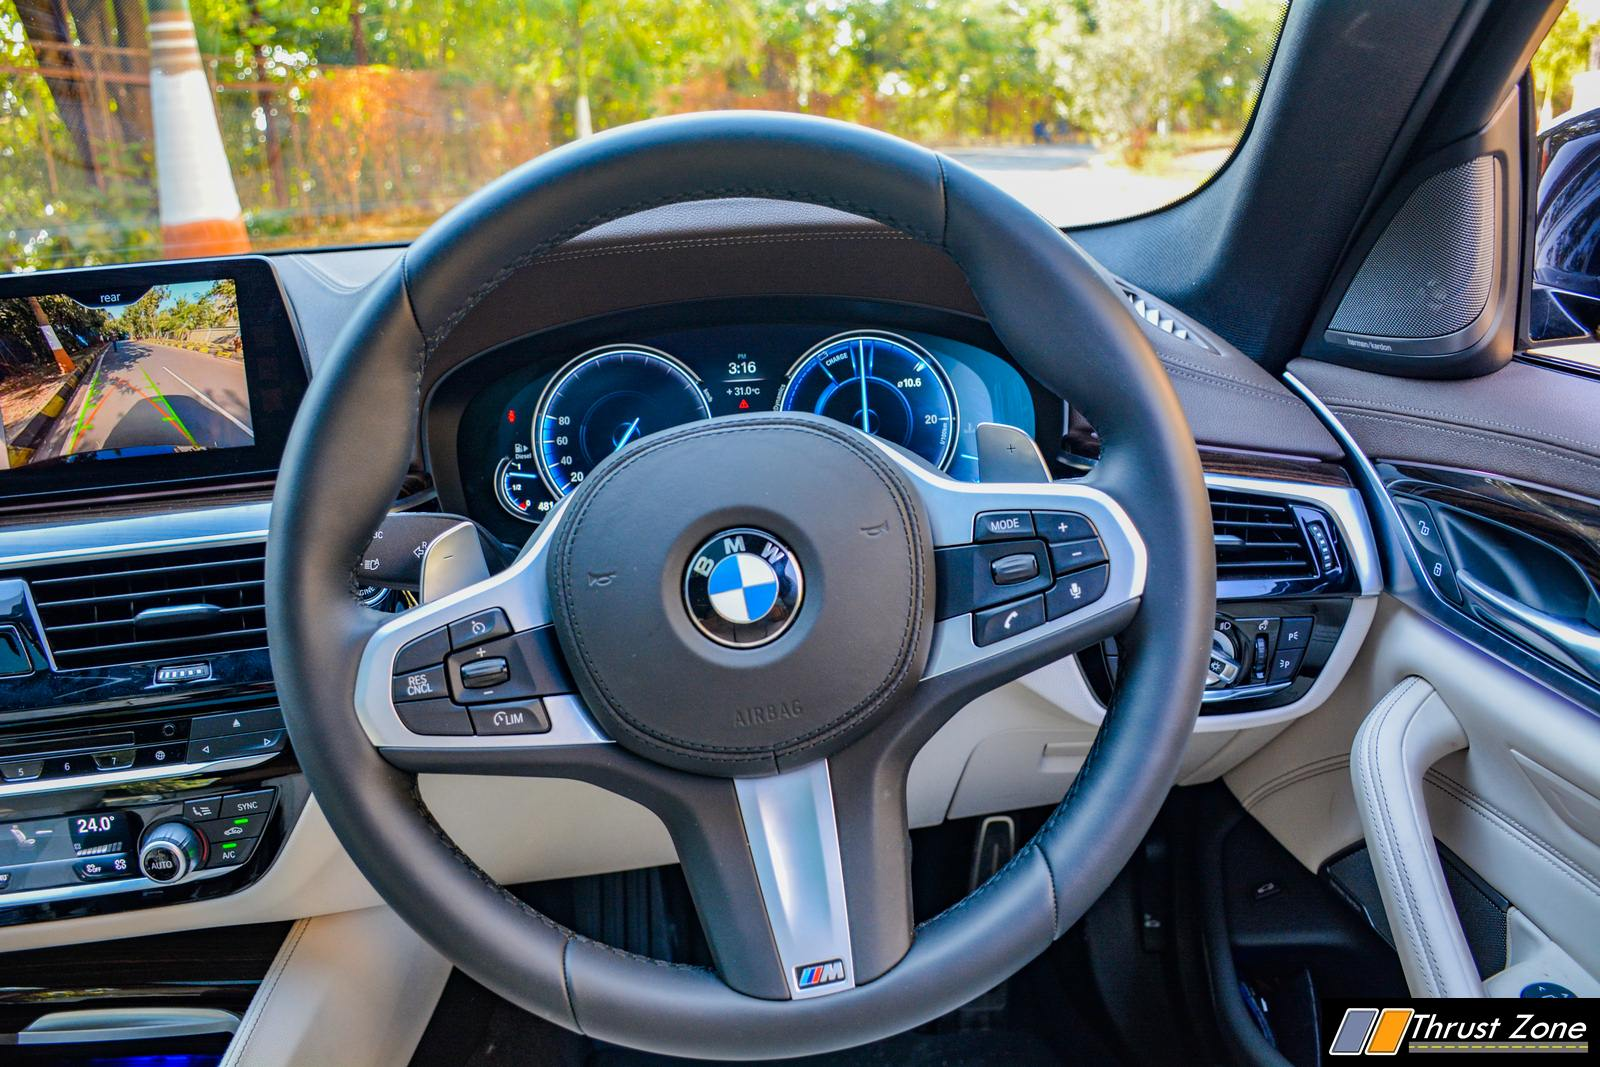 http://www.thrustzone.com/wp-content/uploads/2019/01/2018-BMW-530d-India-Review-30.jpg